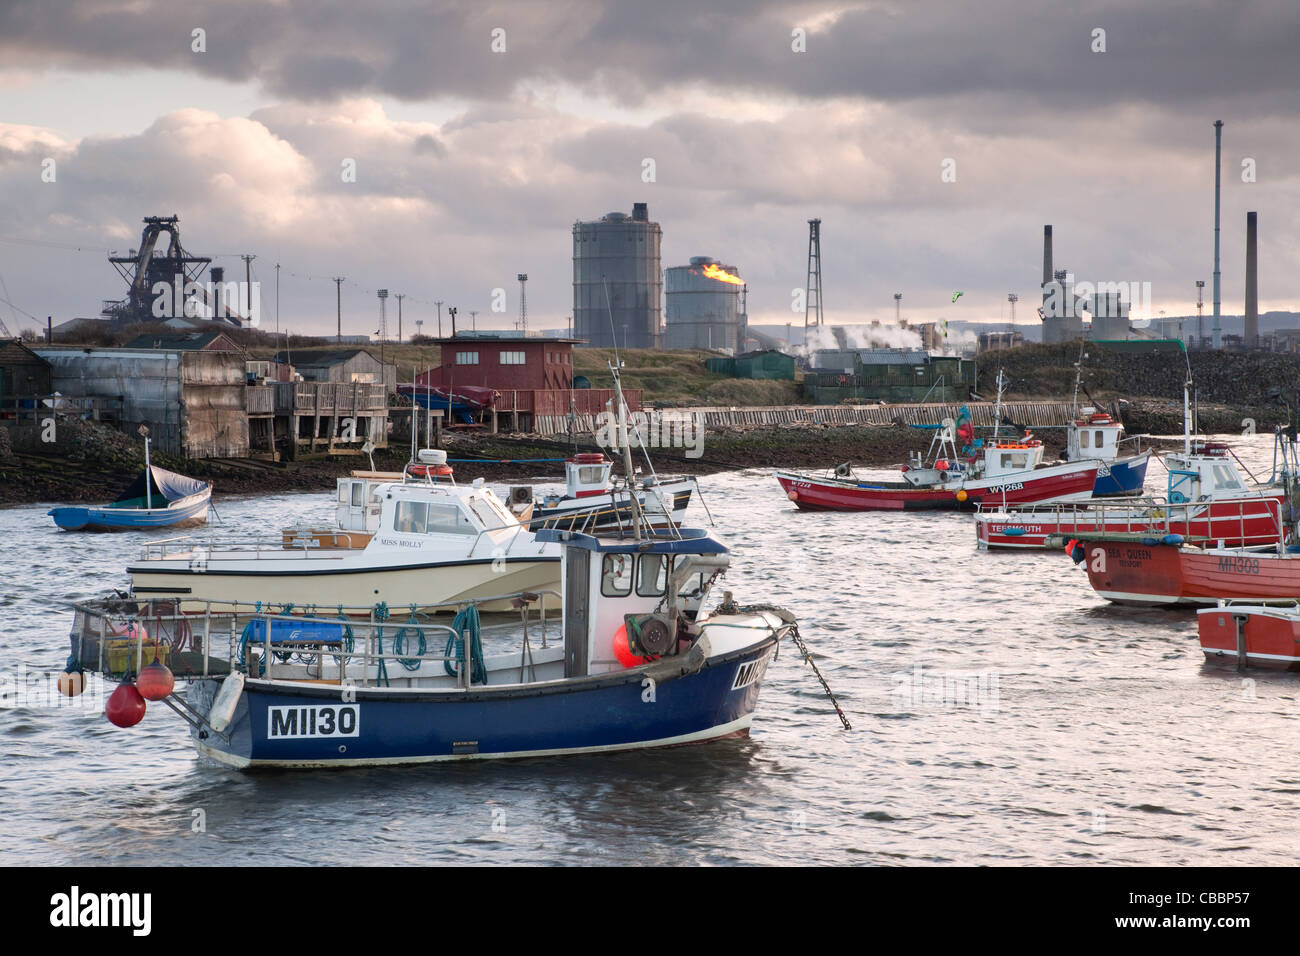 Tata Steel Works from Paddys Hole - Stock Image